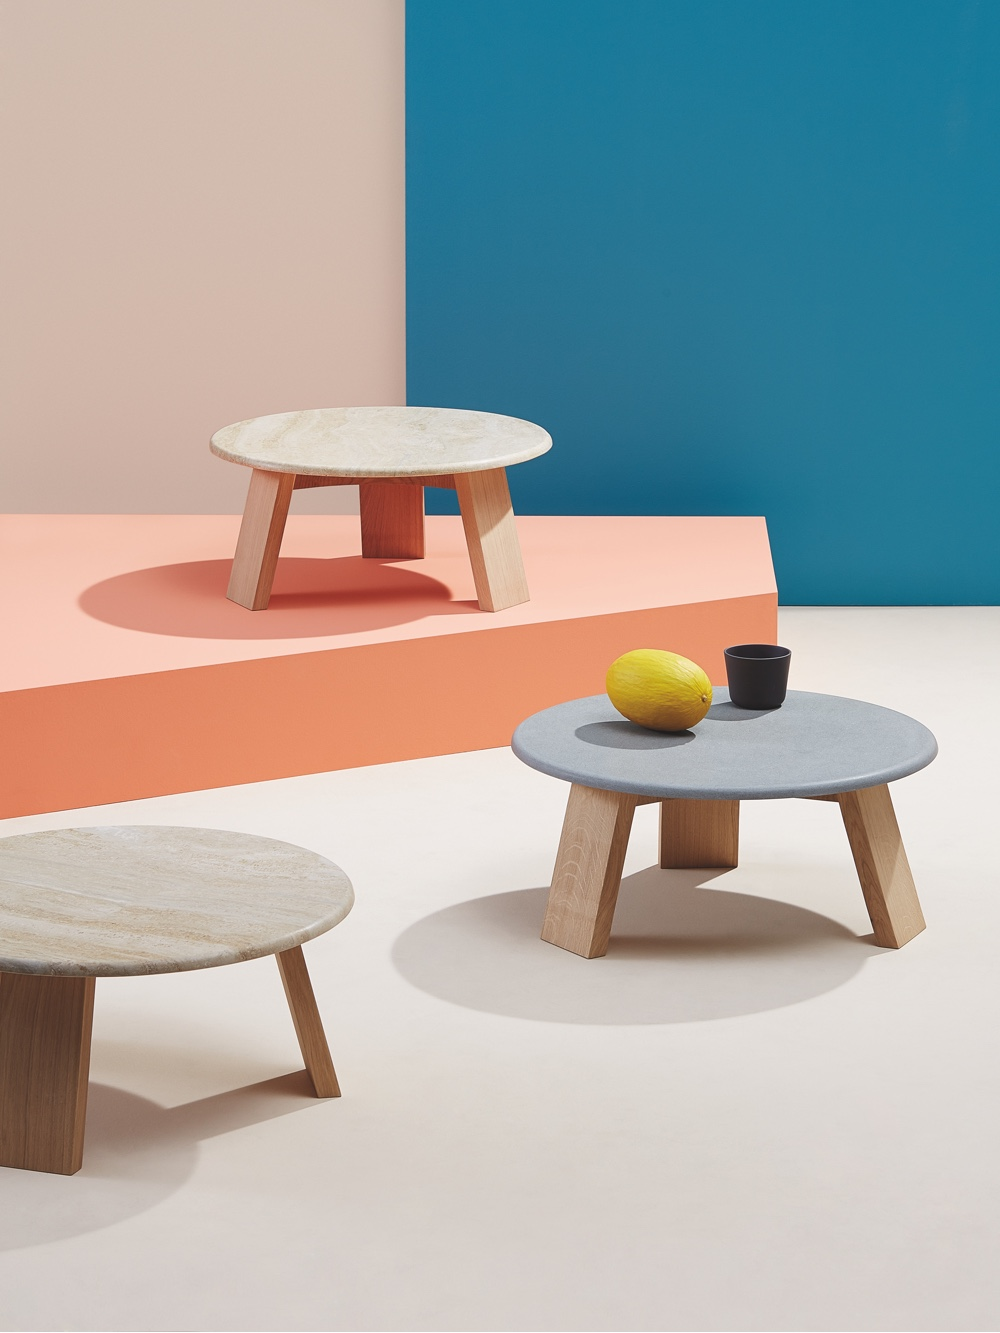 Maya side tables by Lars Beller Fjetland for Discipline.